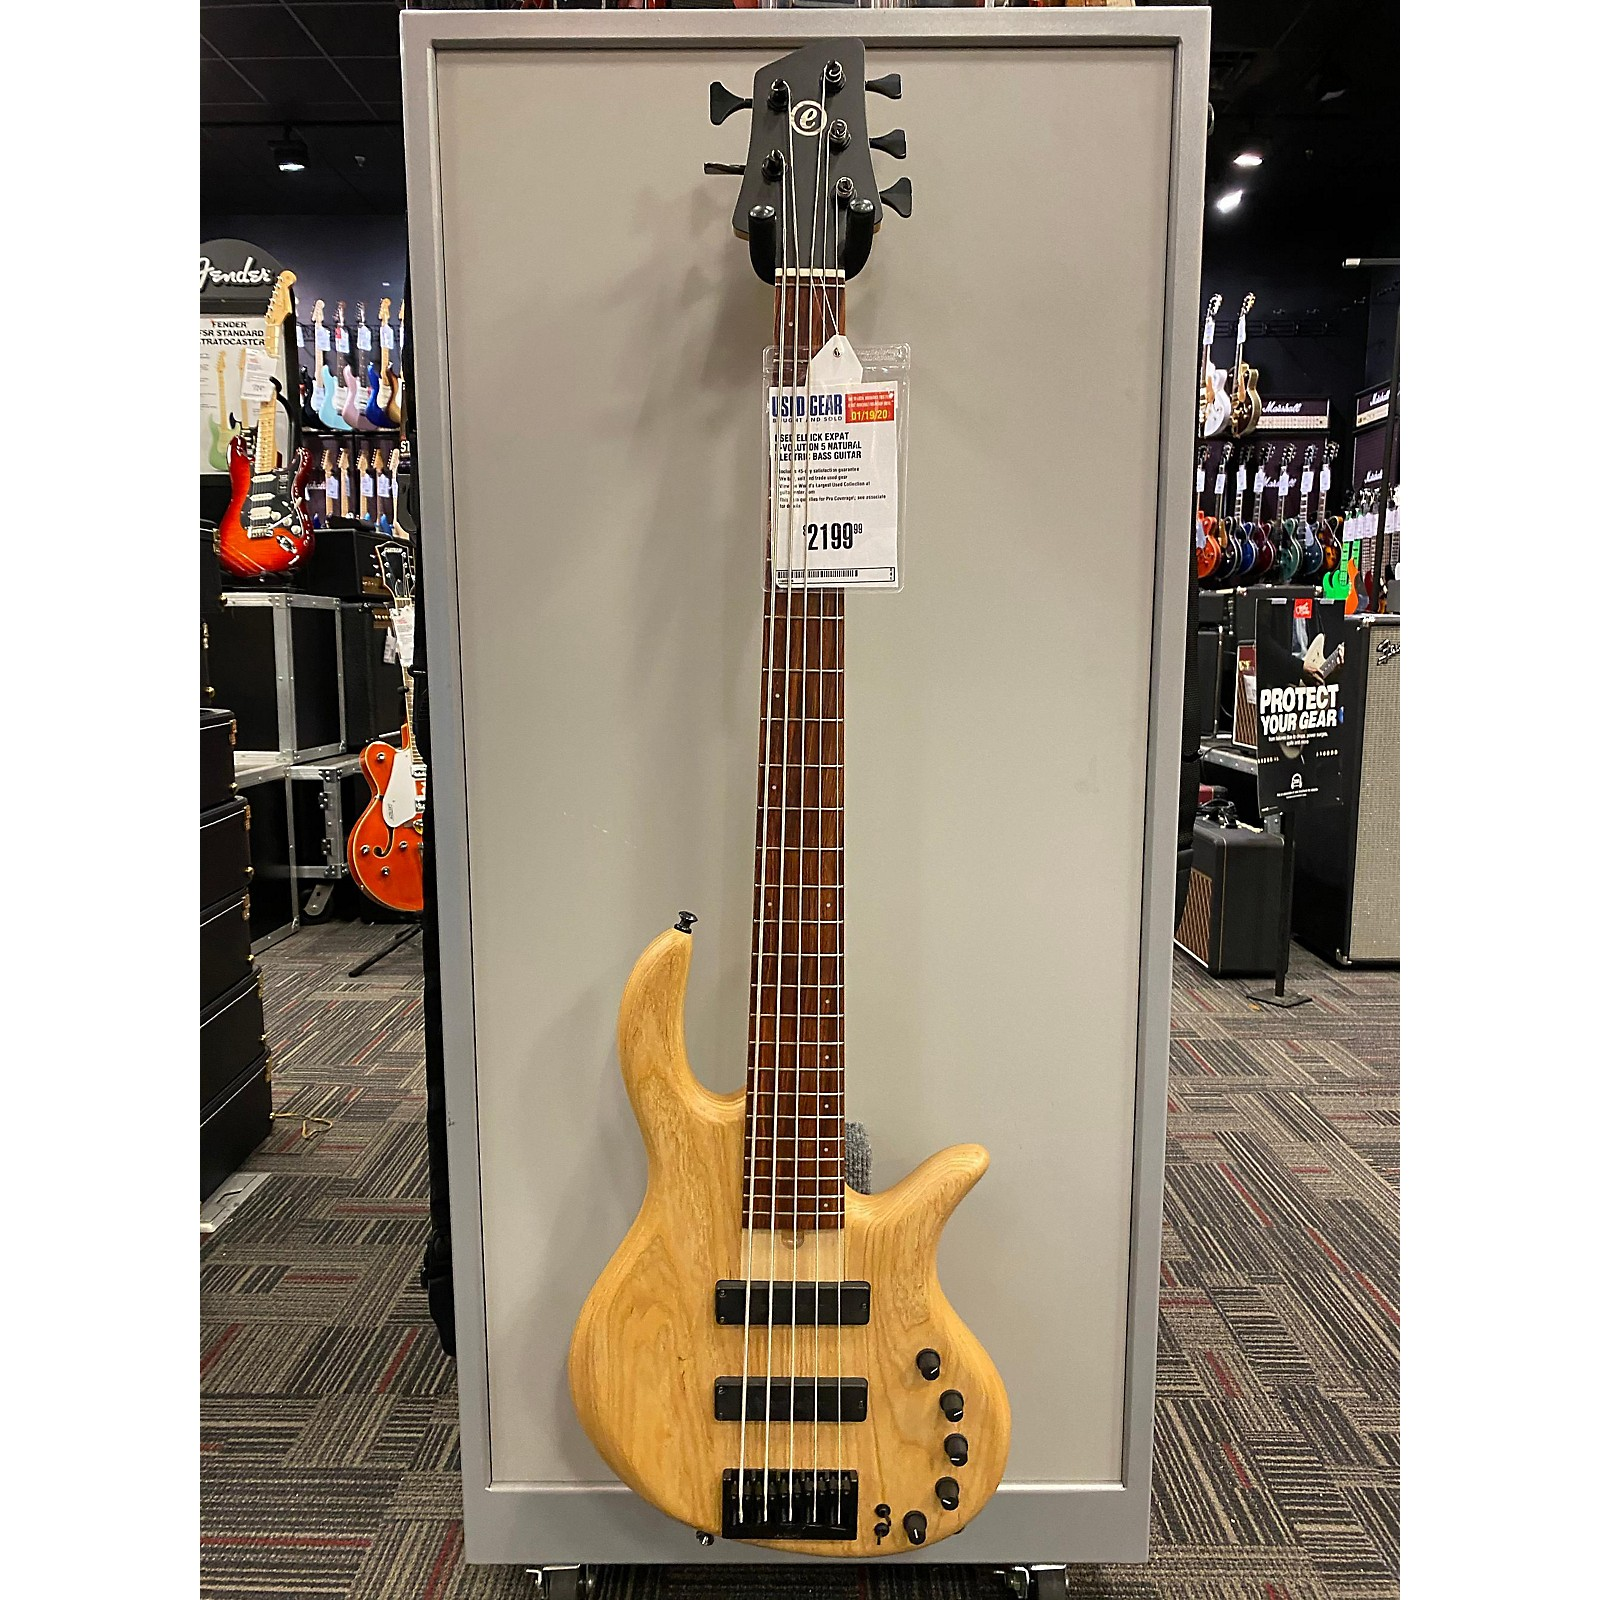 Elrick EXPAT E-VOLUTION 5 Electric Bass Guitar